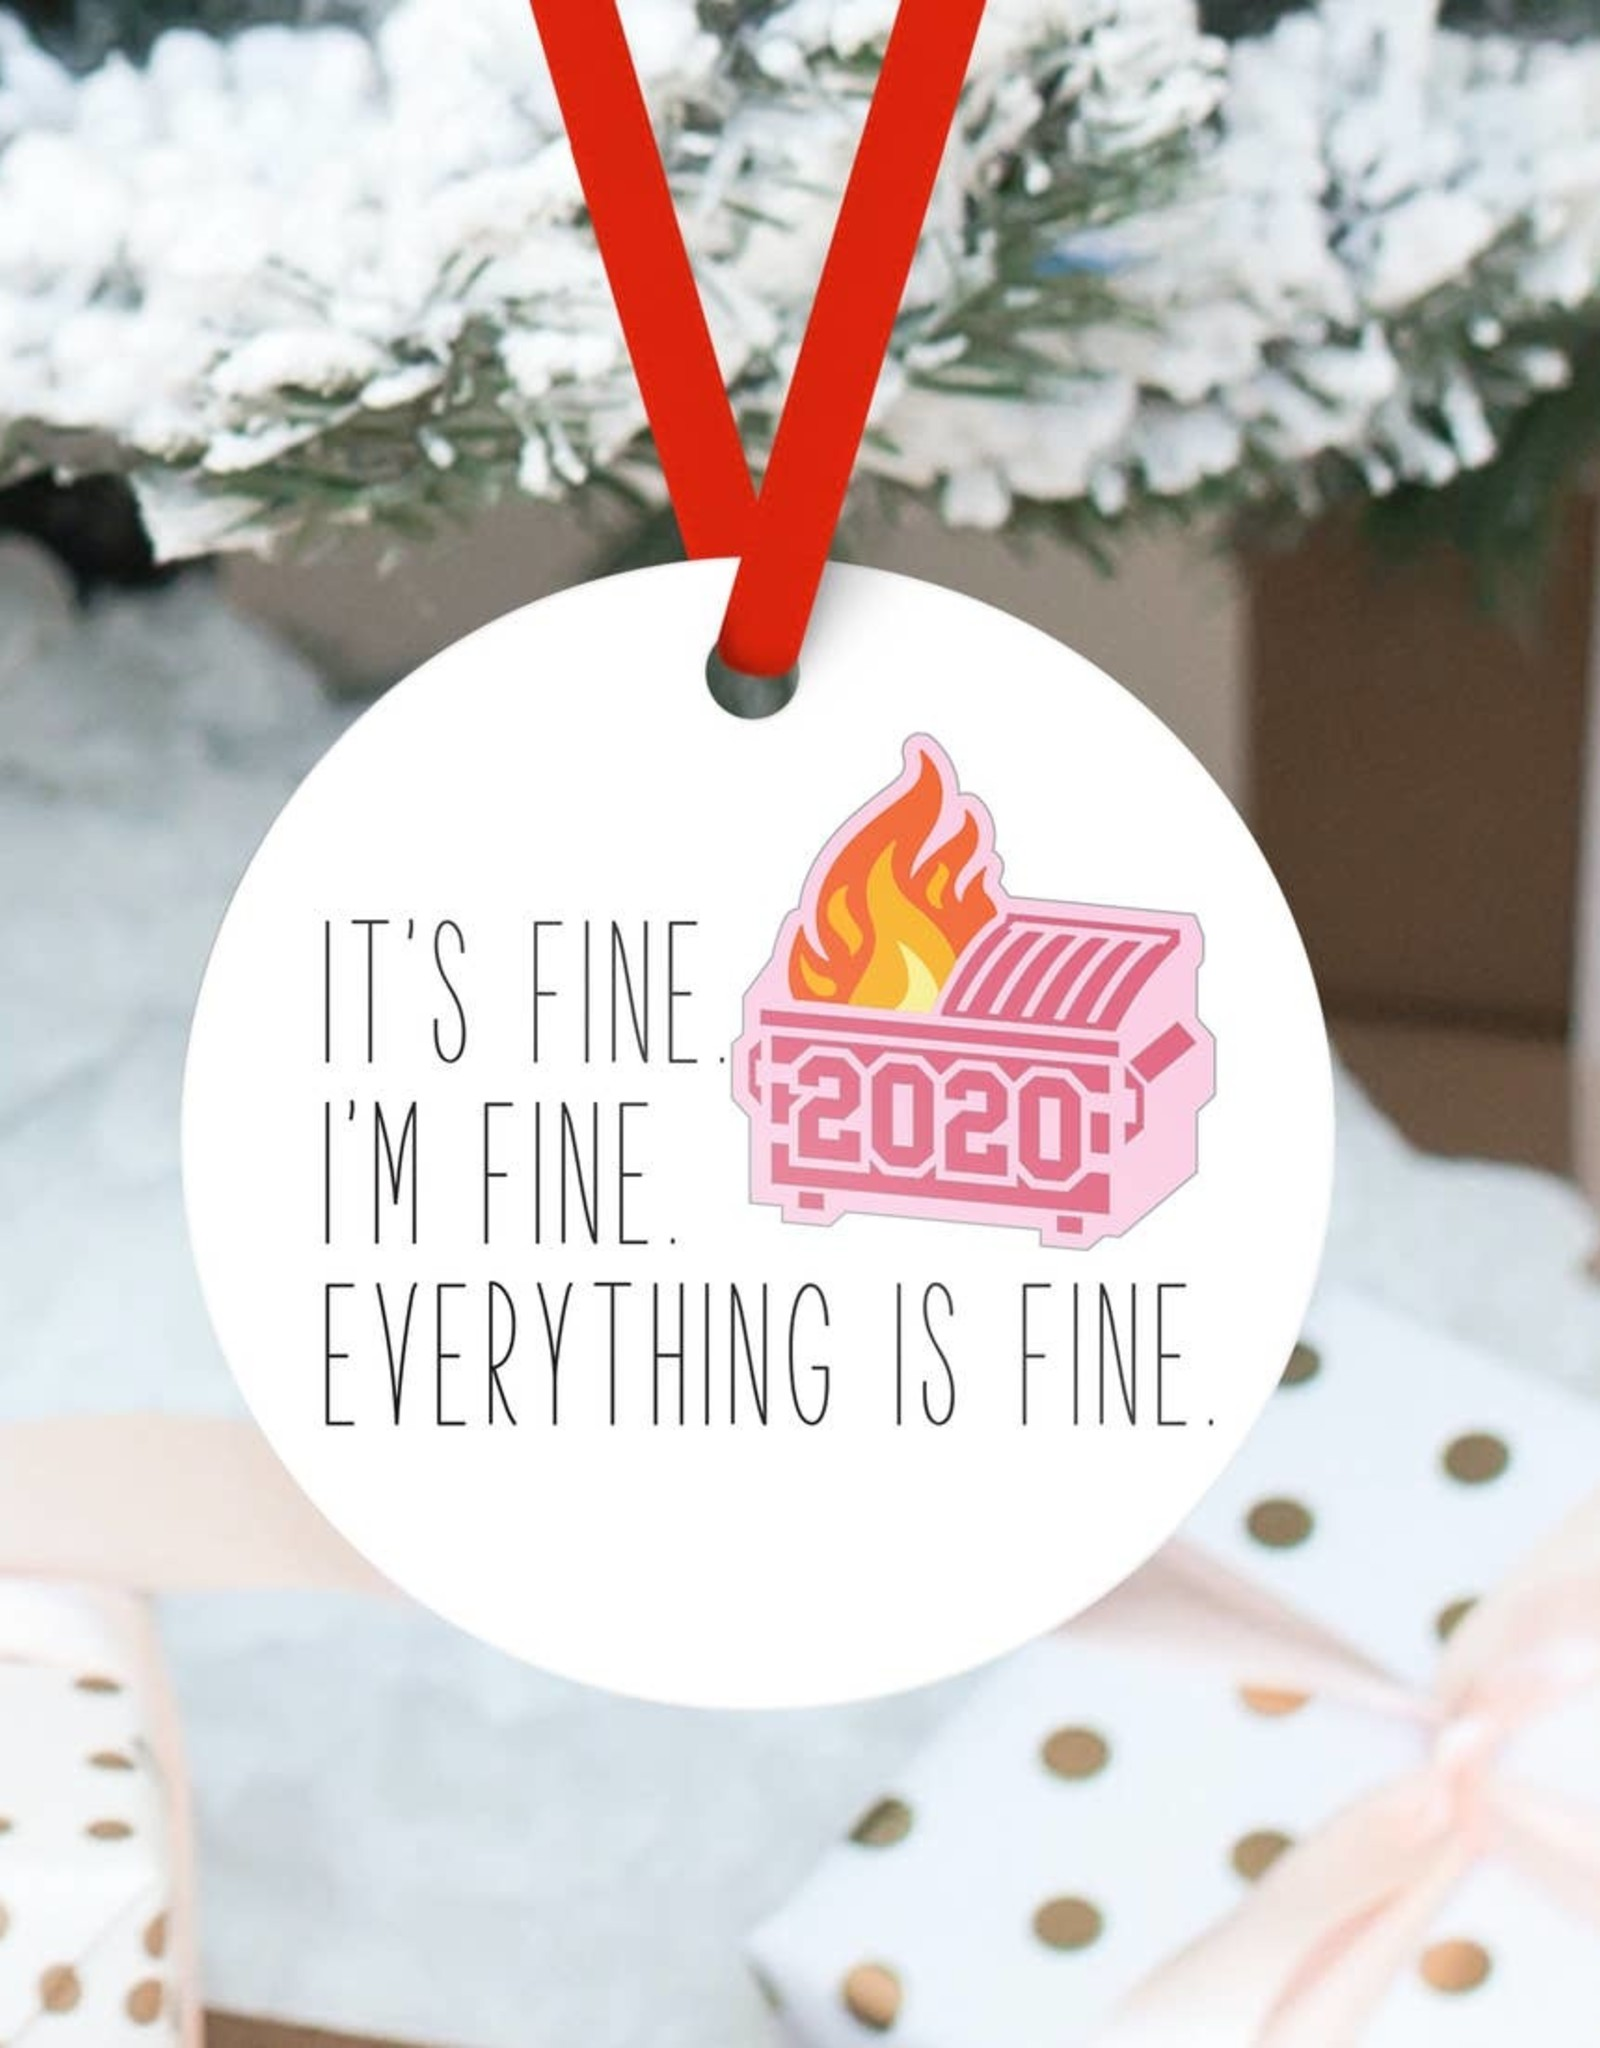 Ornament: 2020 Dumpster Fire